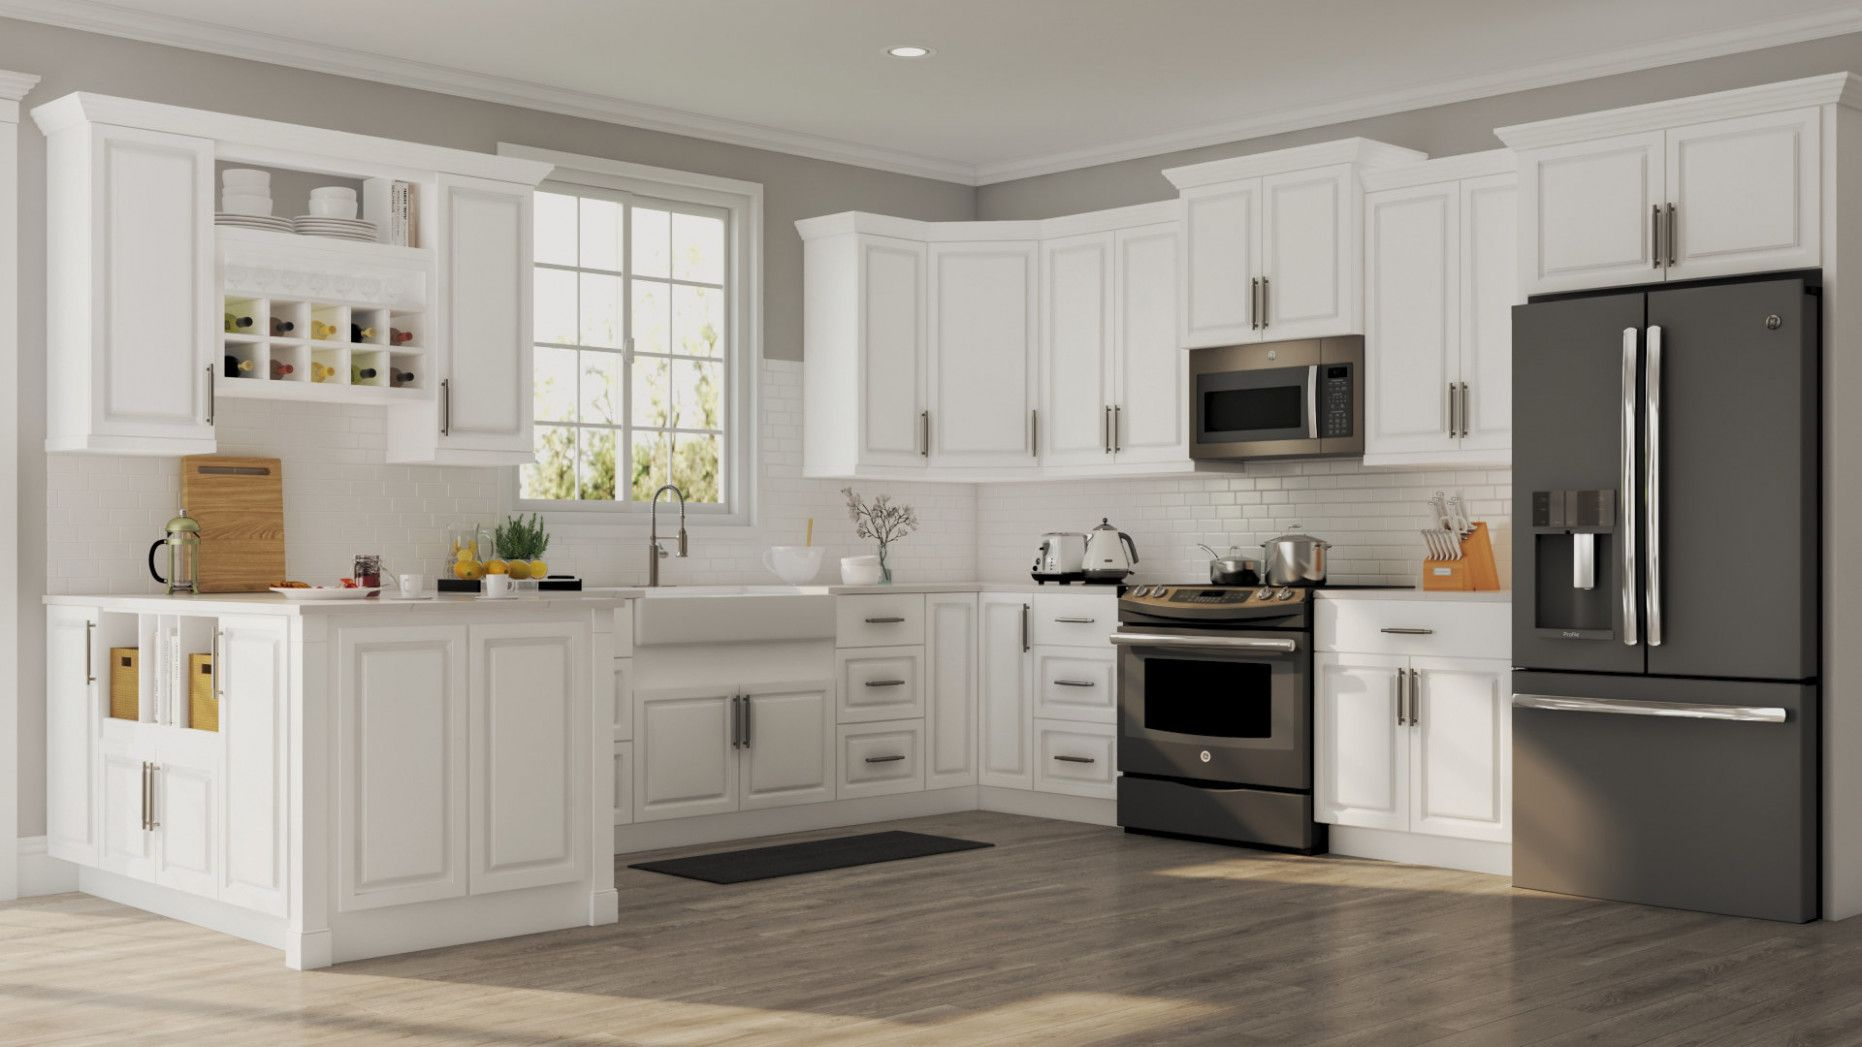 15 Ideas How Much Do Kitchen Cabinets Cost At Home Depot ...